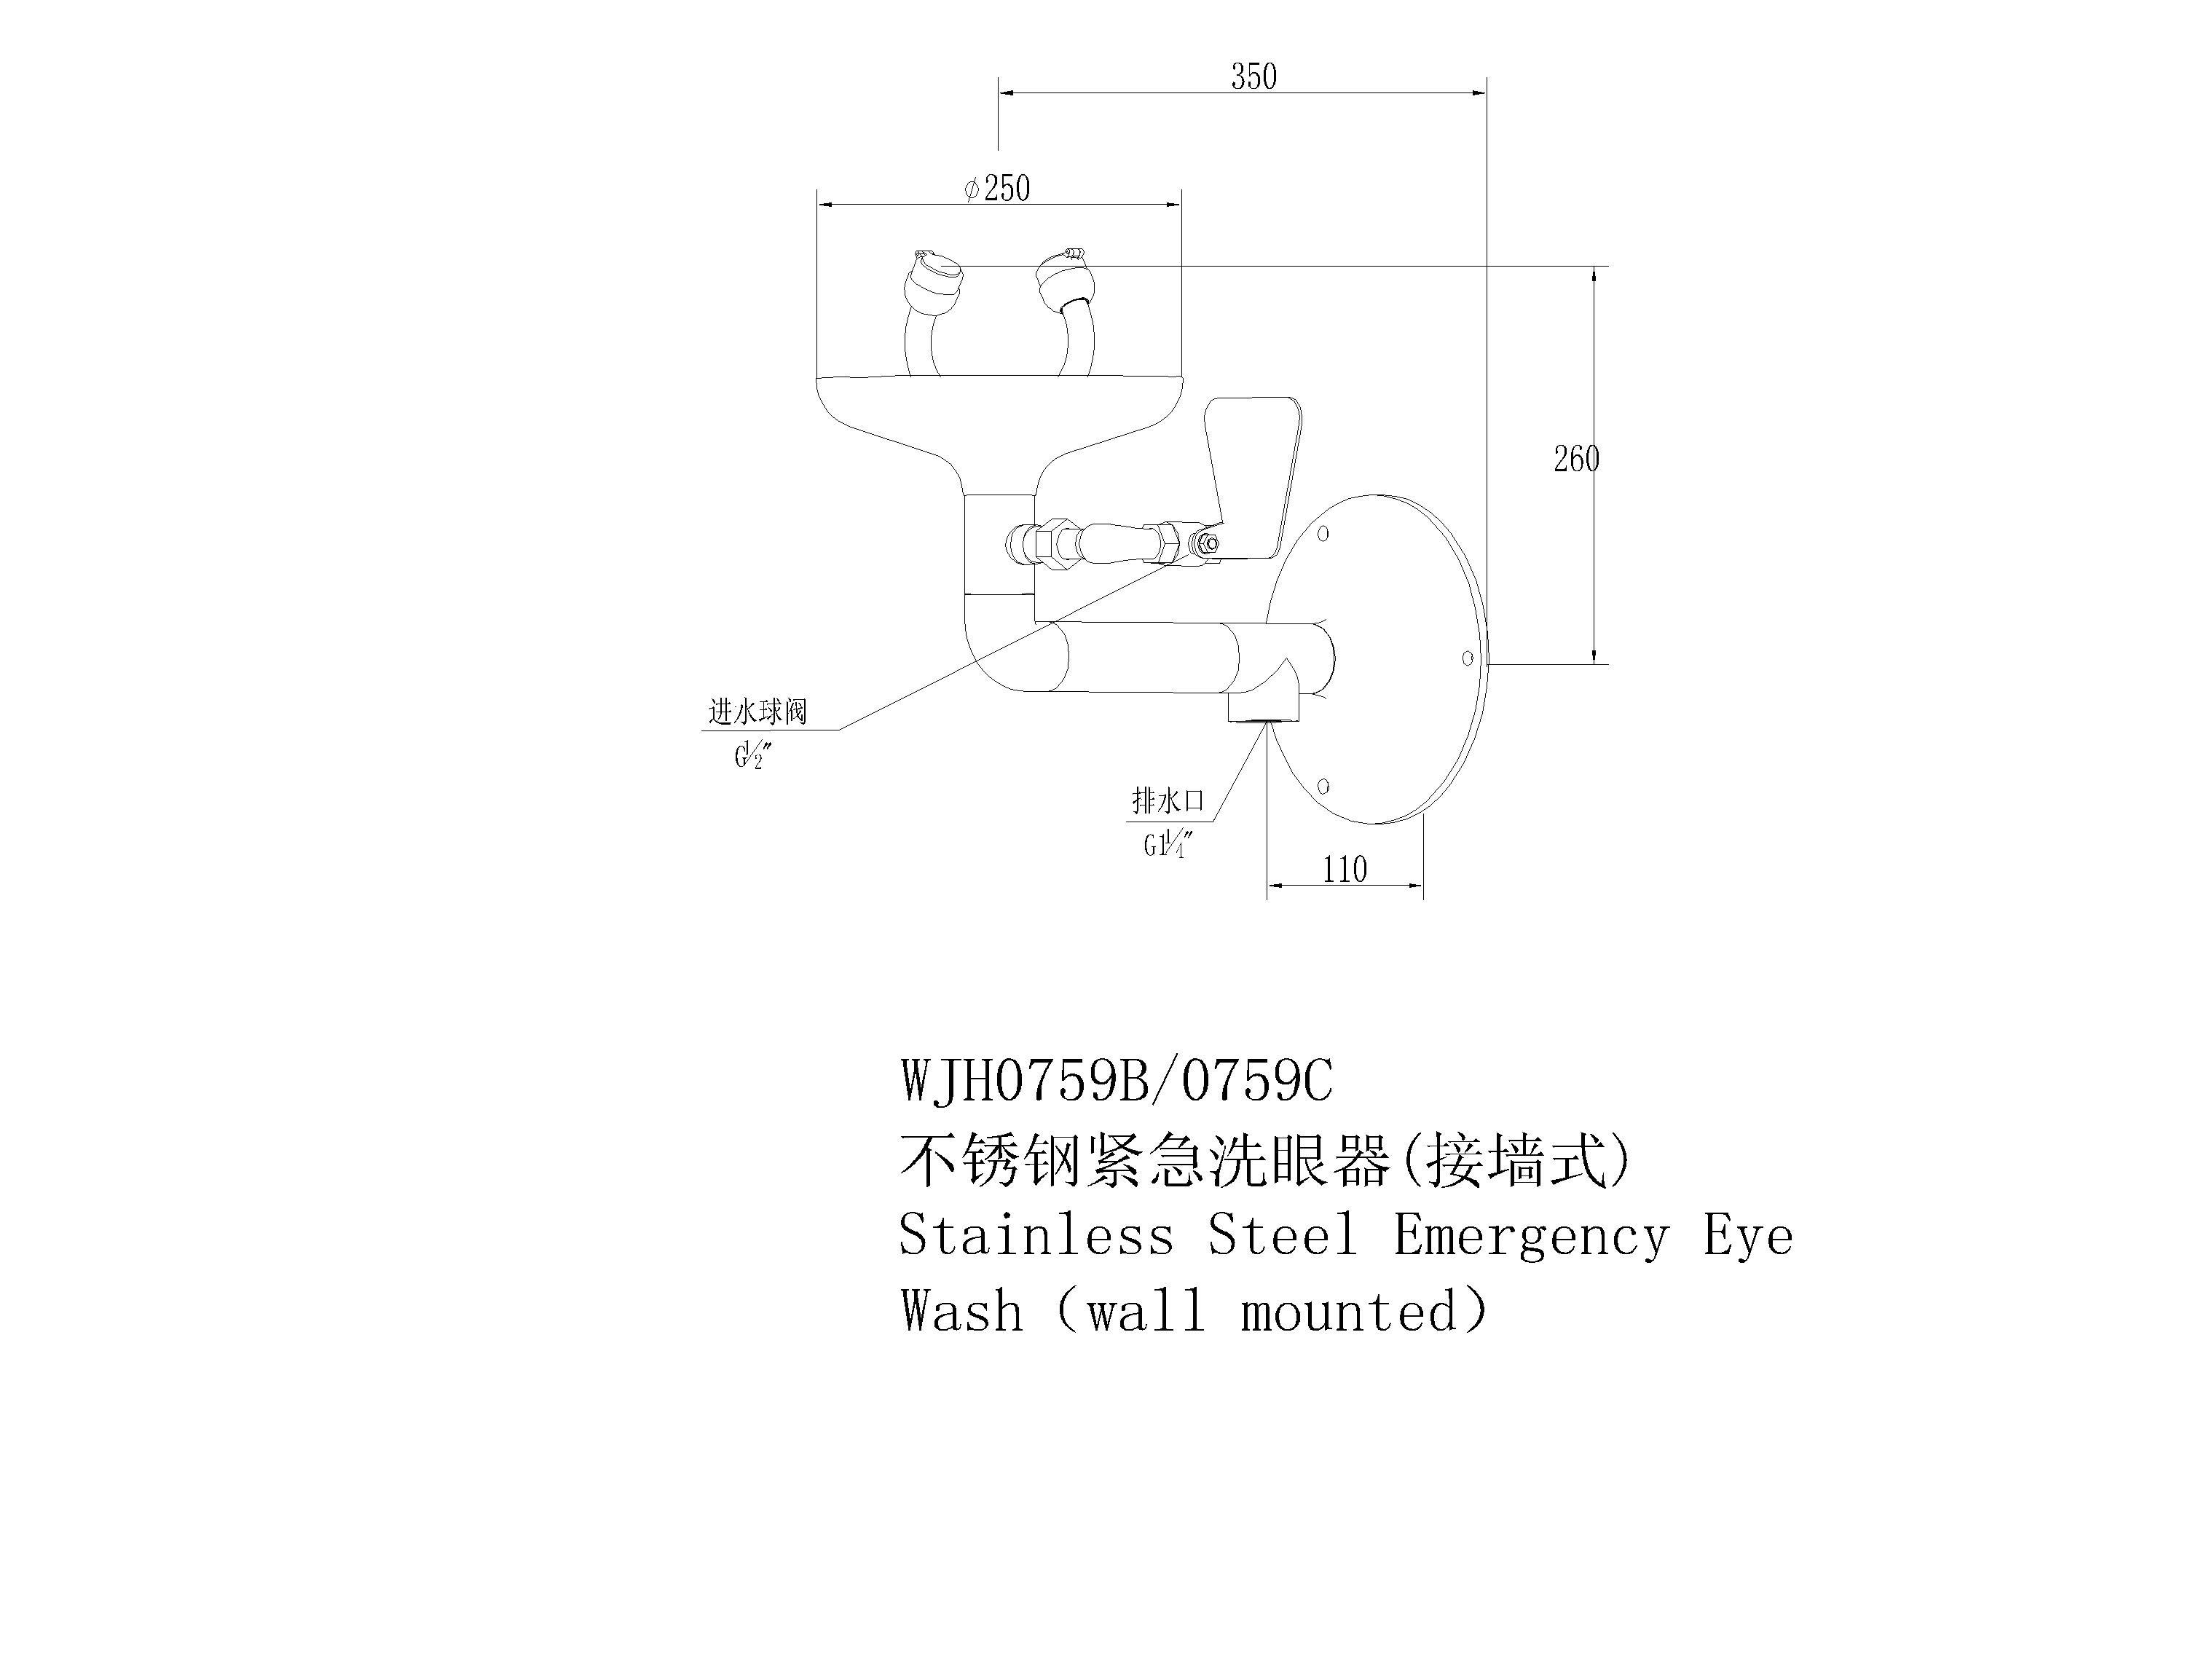 Safety Equipment, Wall Mounted Eye Wash (WJH0759C)